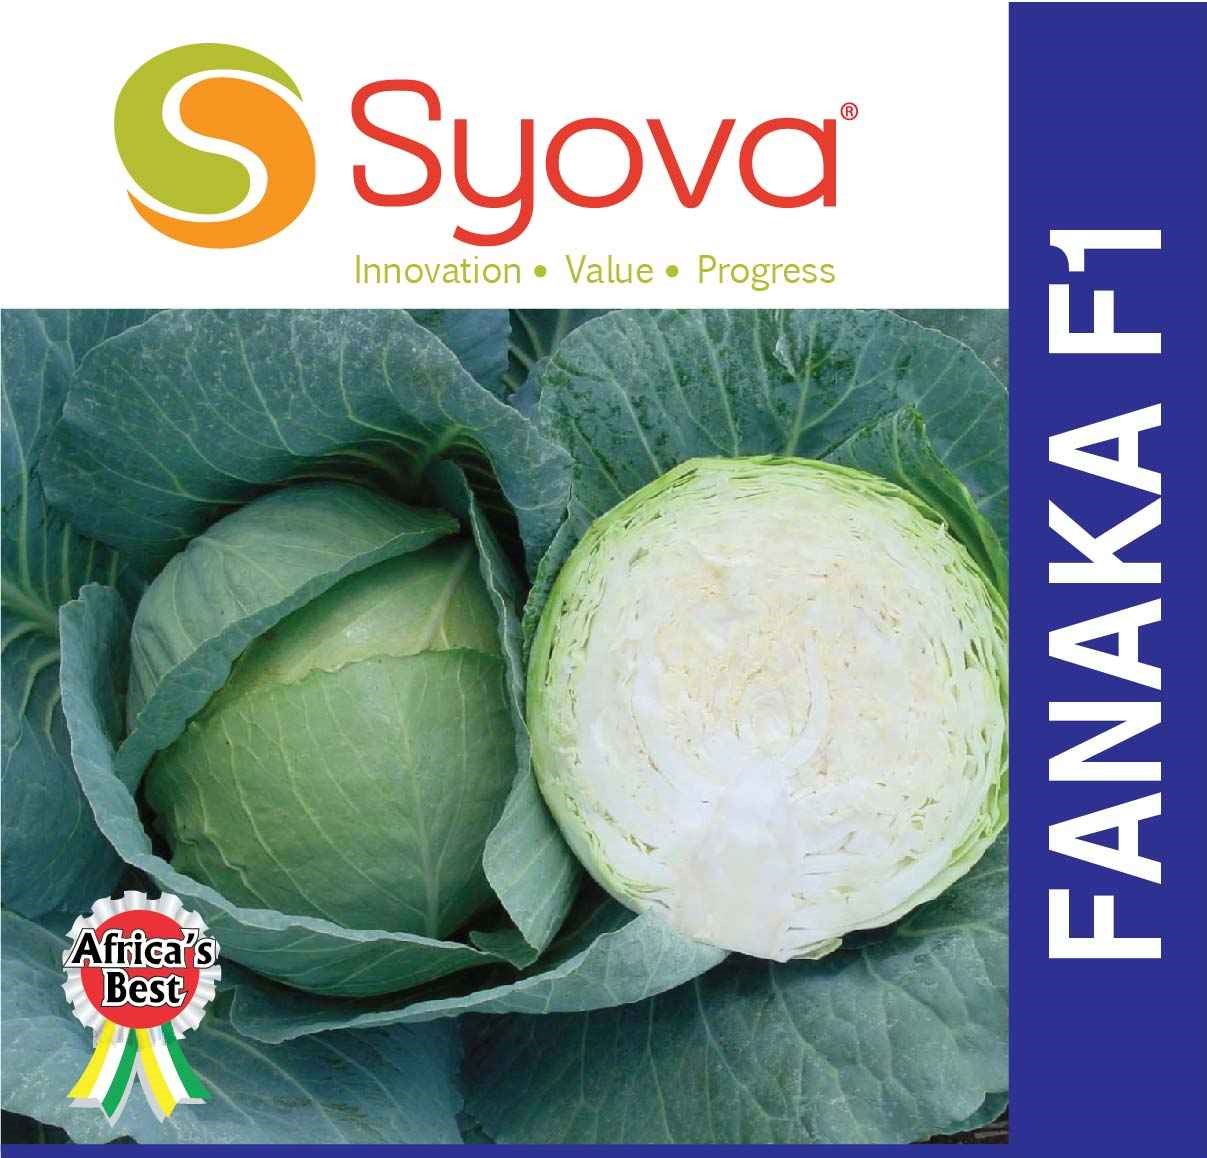 FANAKA F1 Cabbage Seeds (25gm)